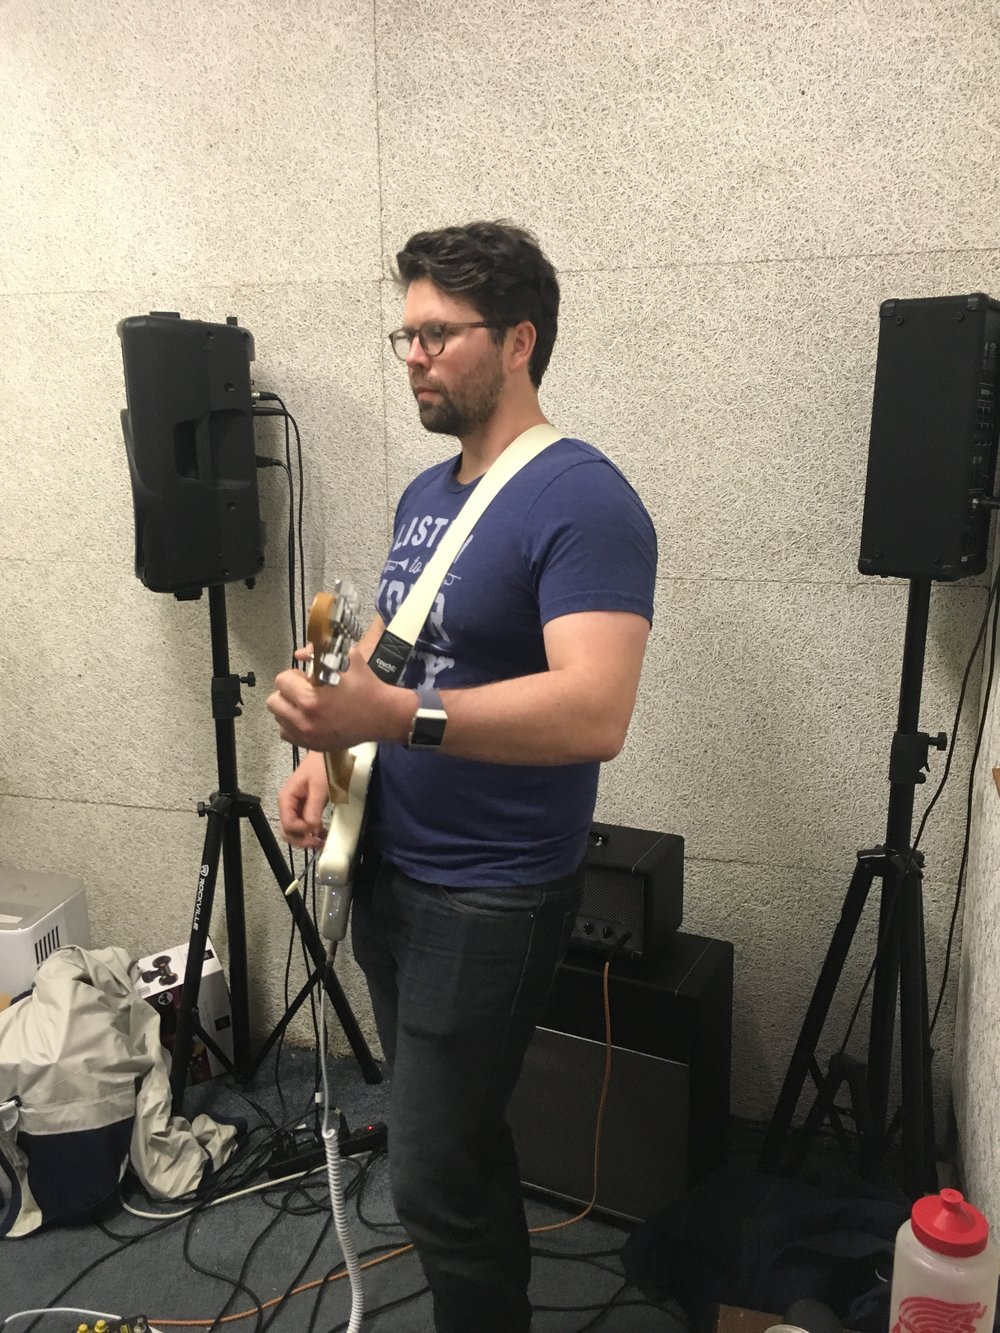 Gold From Grief guitarist Michael Furman gets into the zone while practicing with his band, a Tuesday tradition. (Photo by Zachary Kolesar)